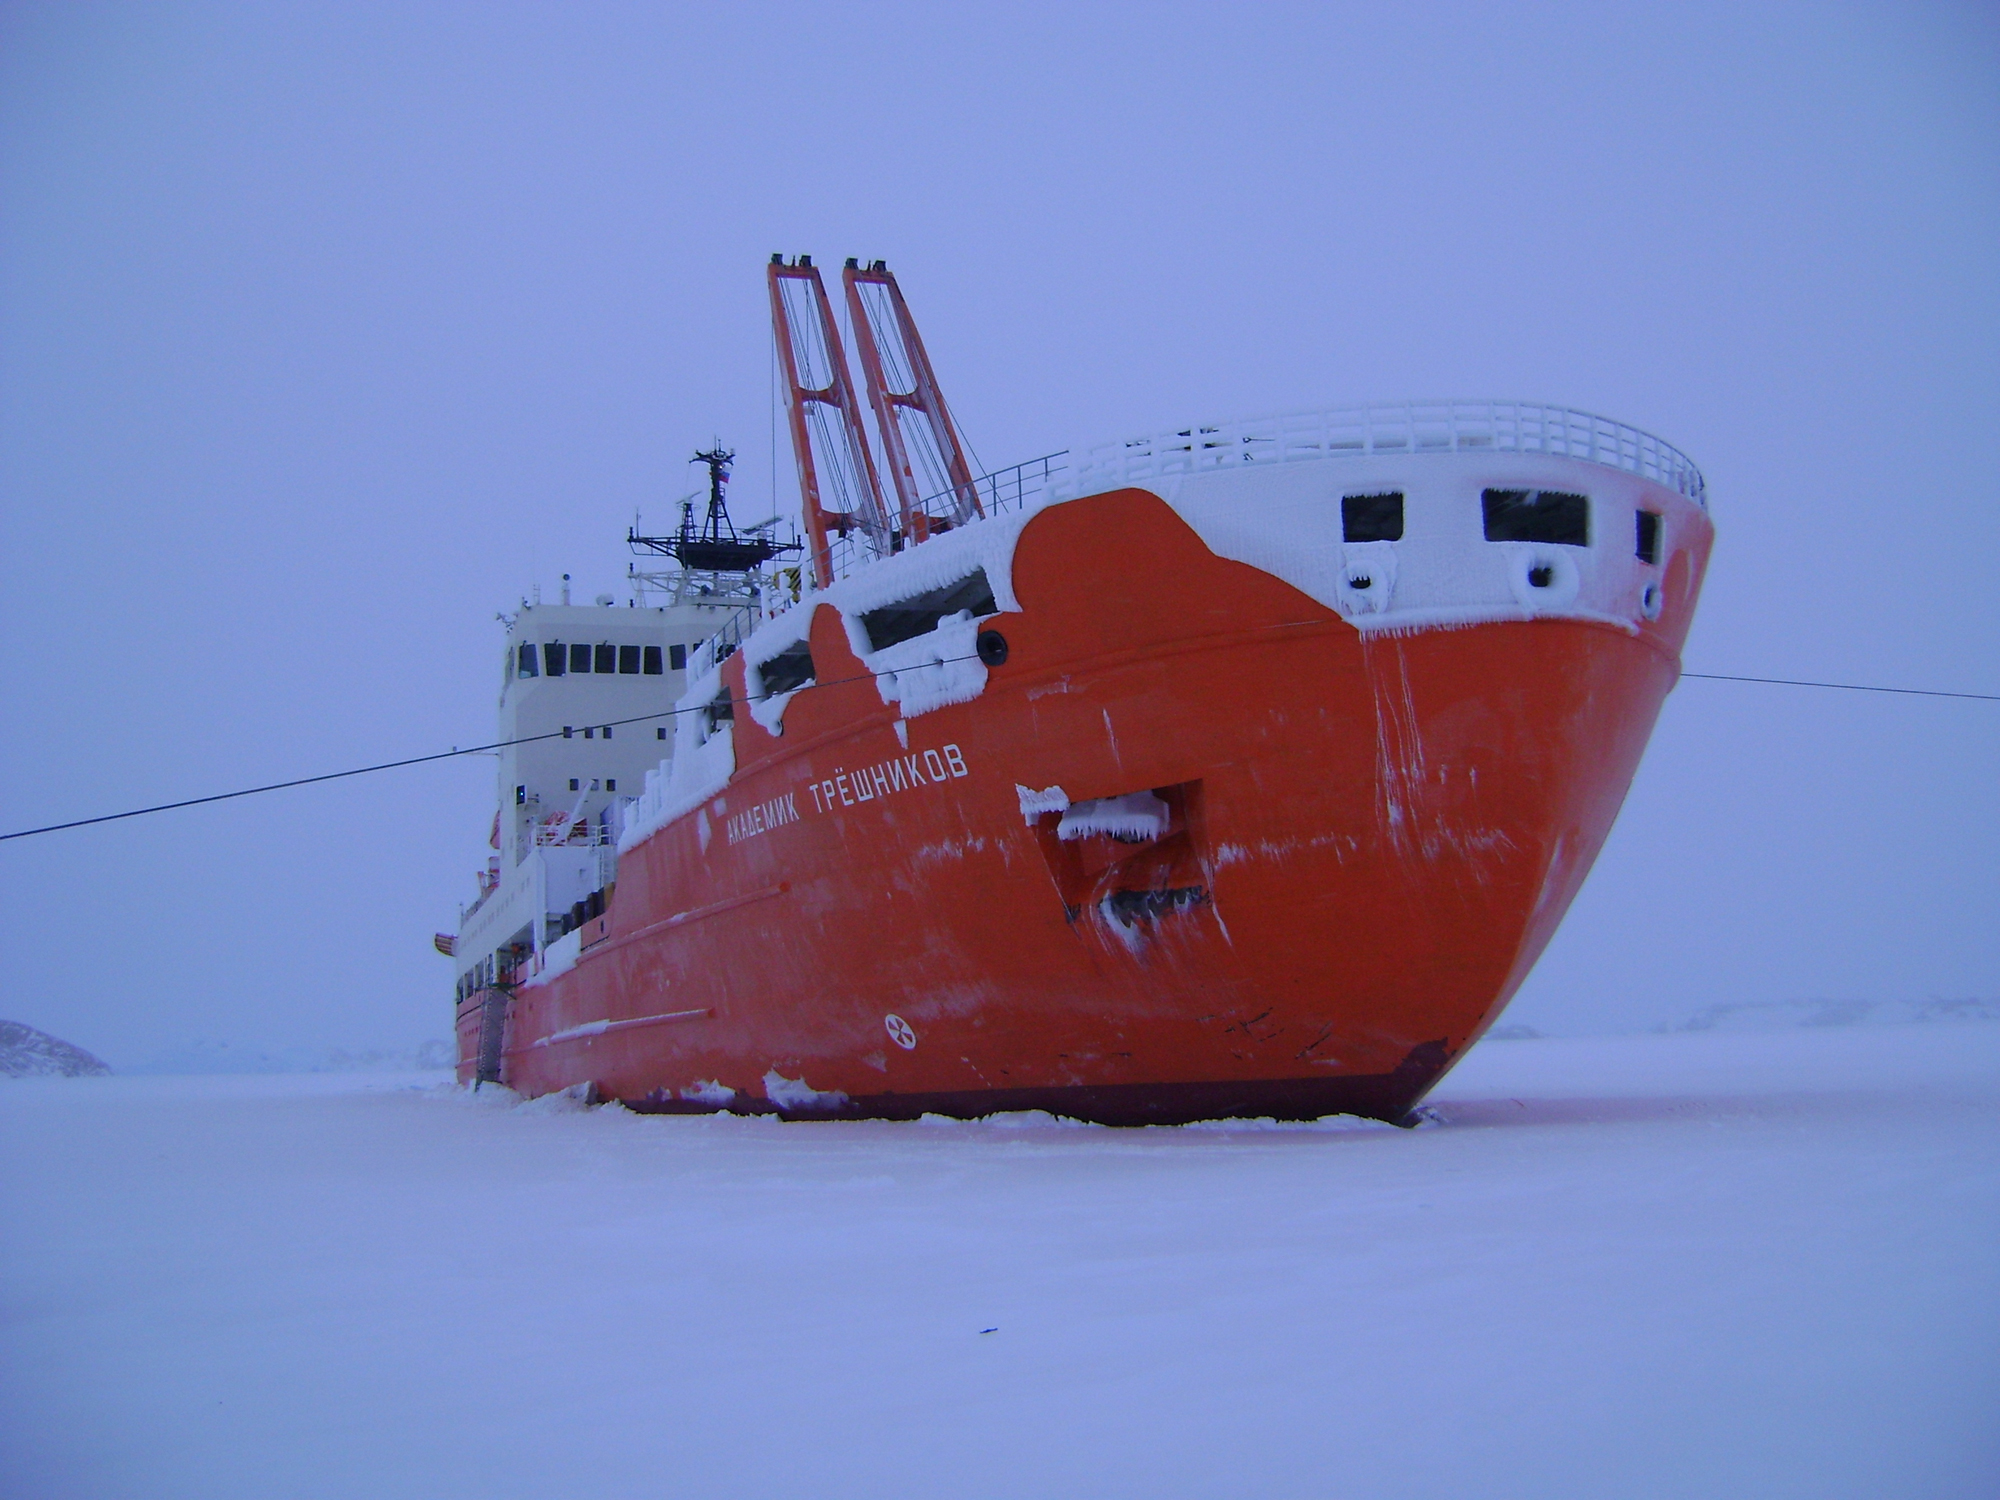 Le navire scientifique Akademik Treshnikov en conditions polaires.